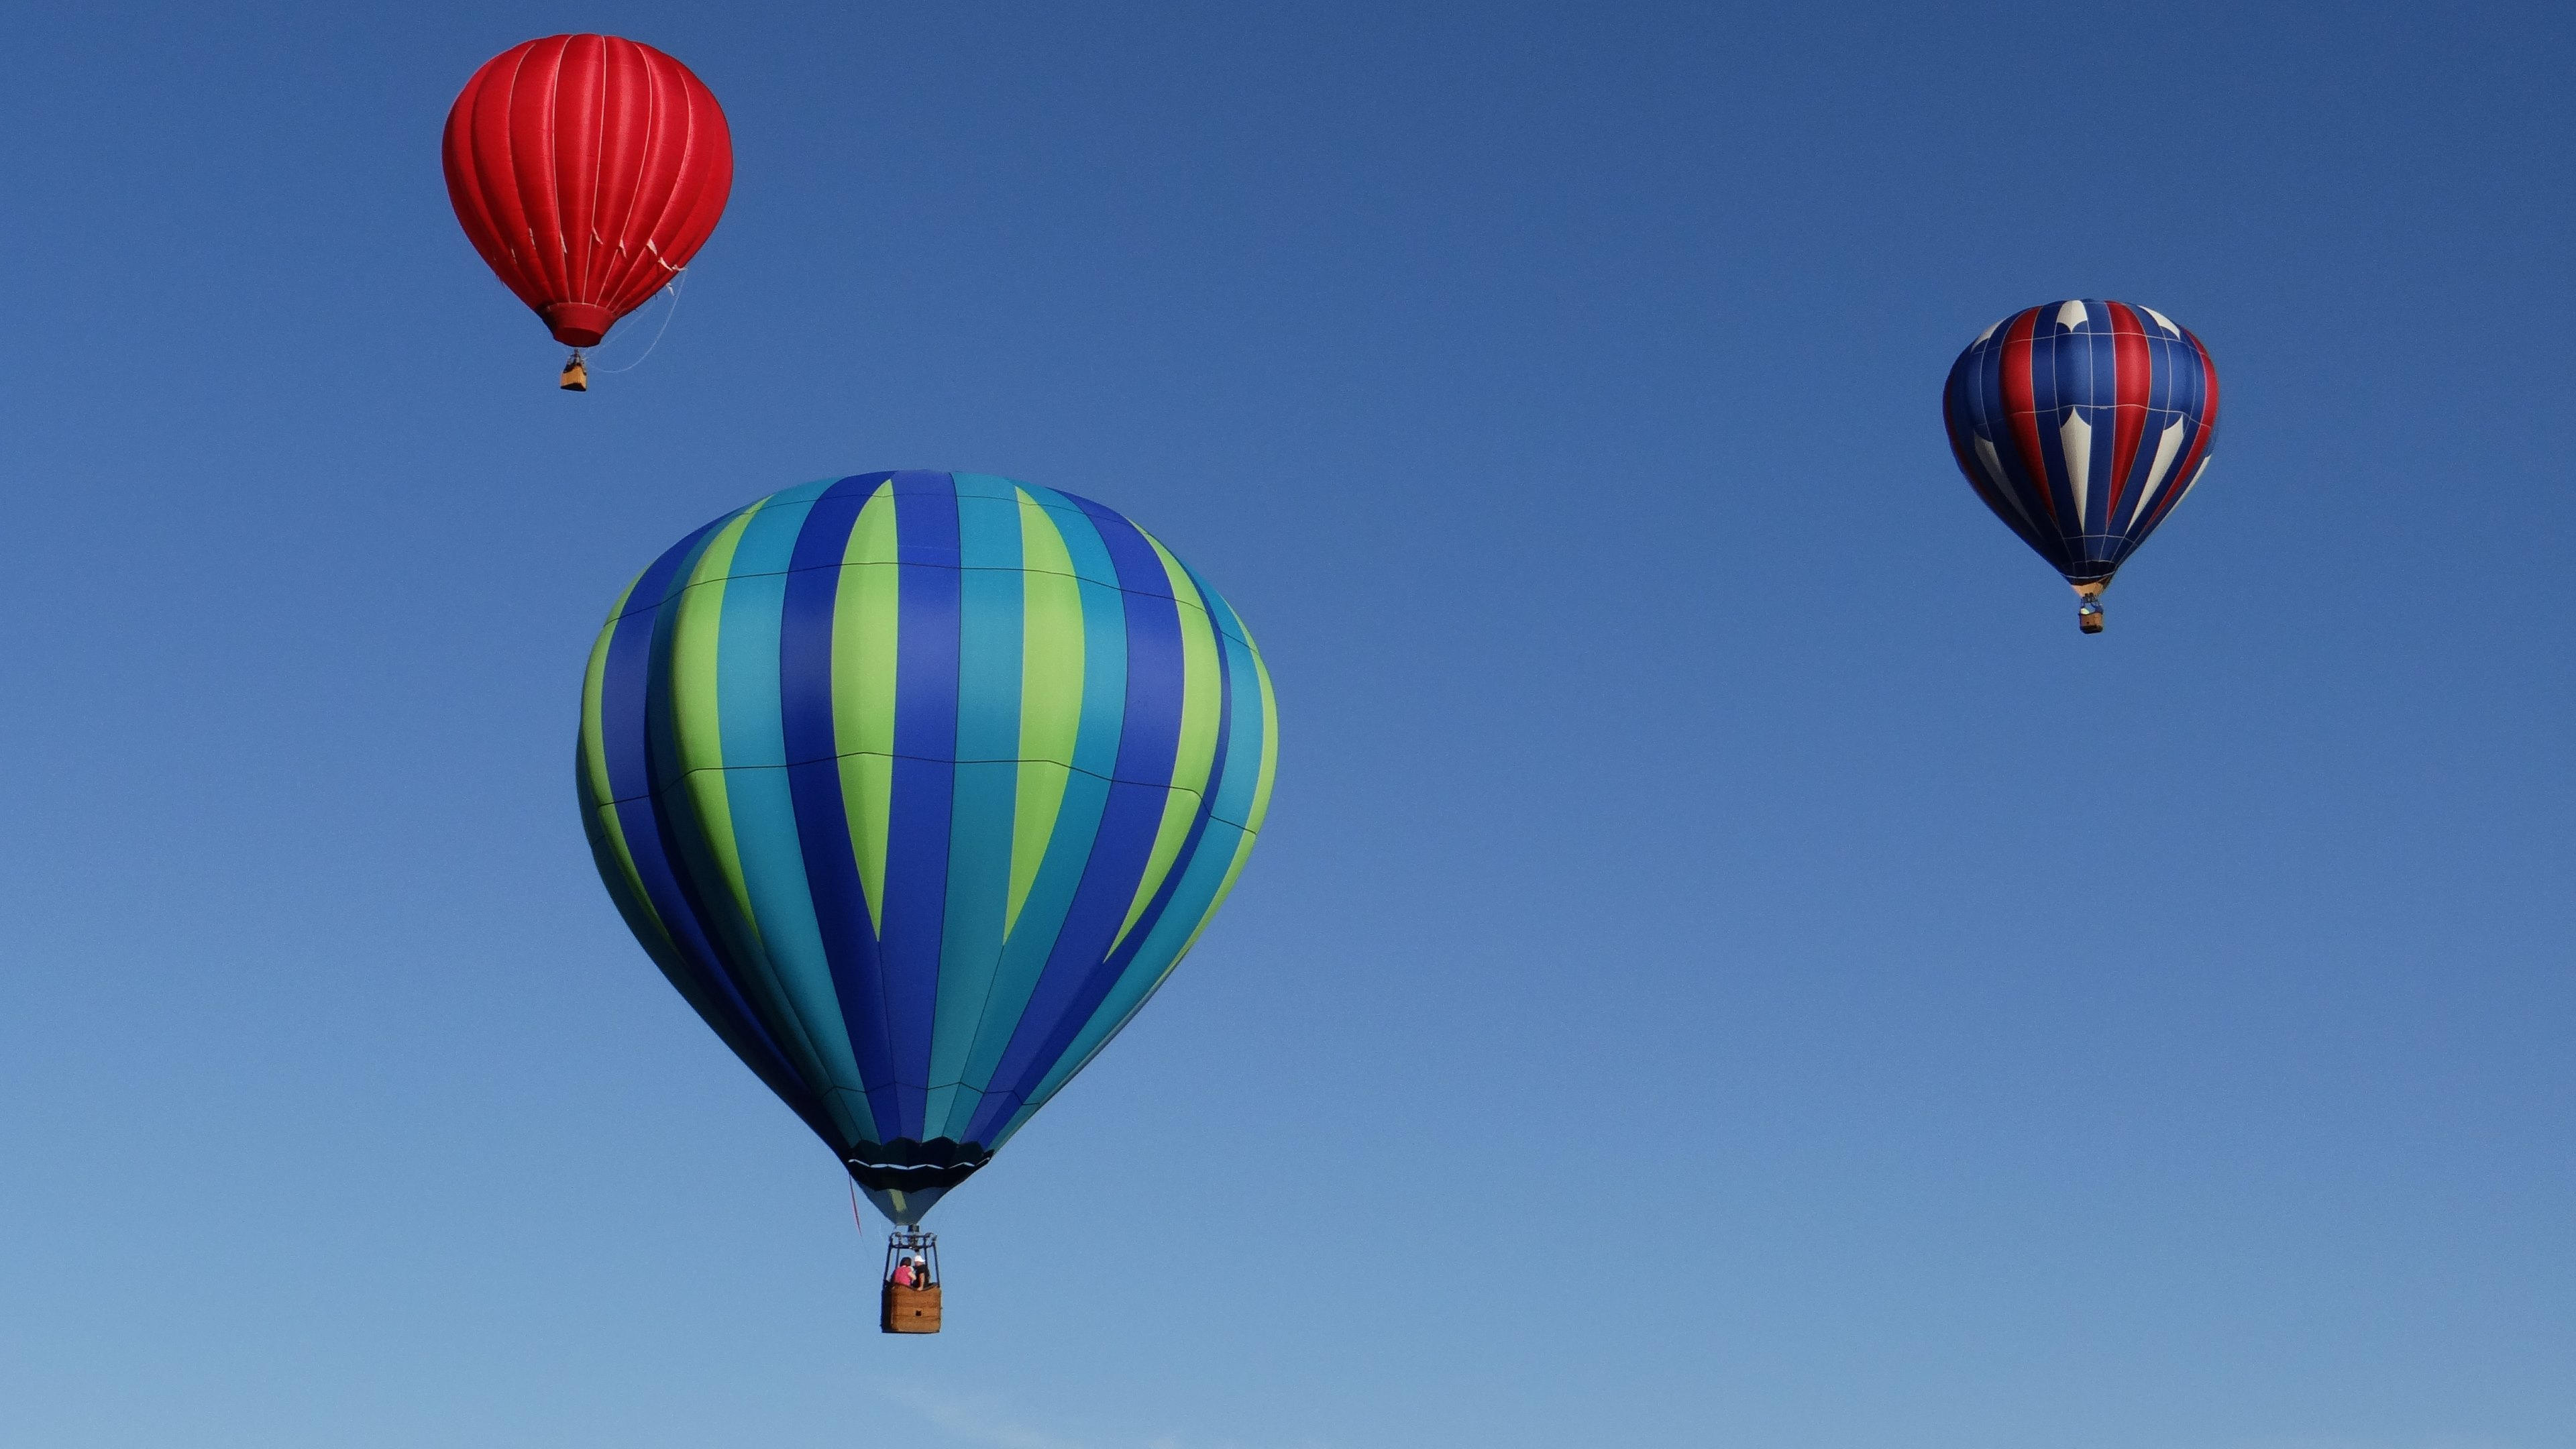 photo collection 4k ultra hd baloon